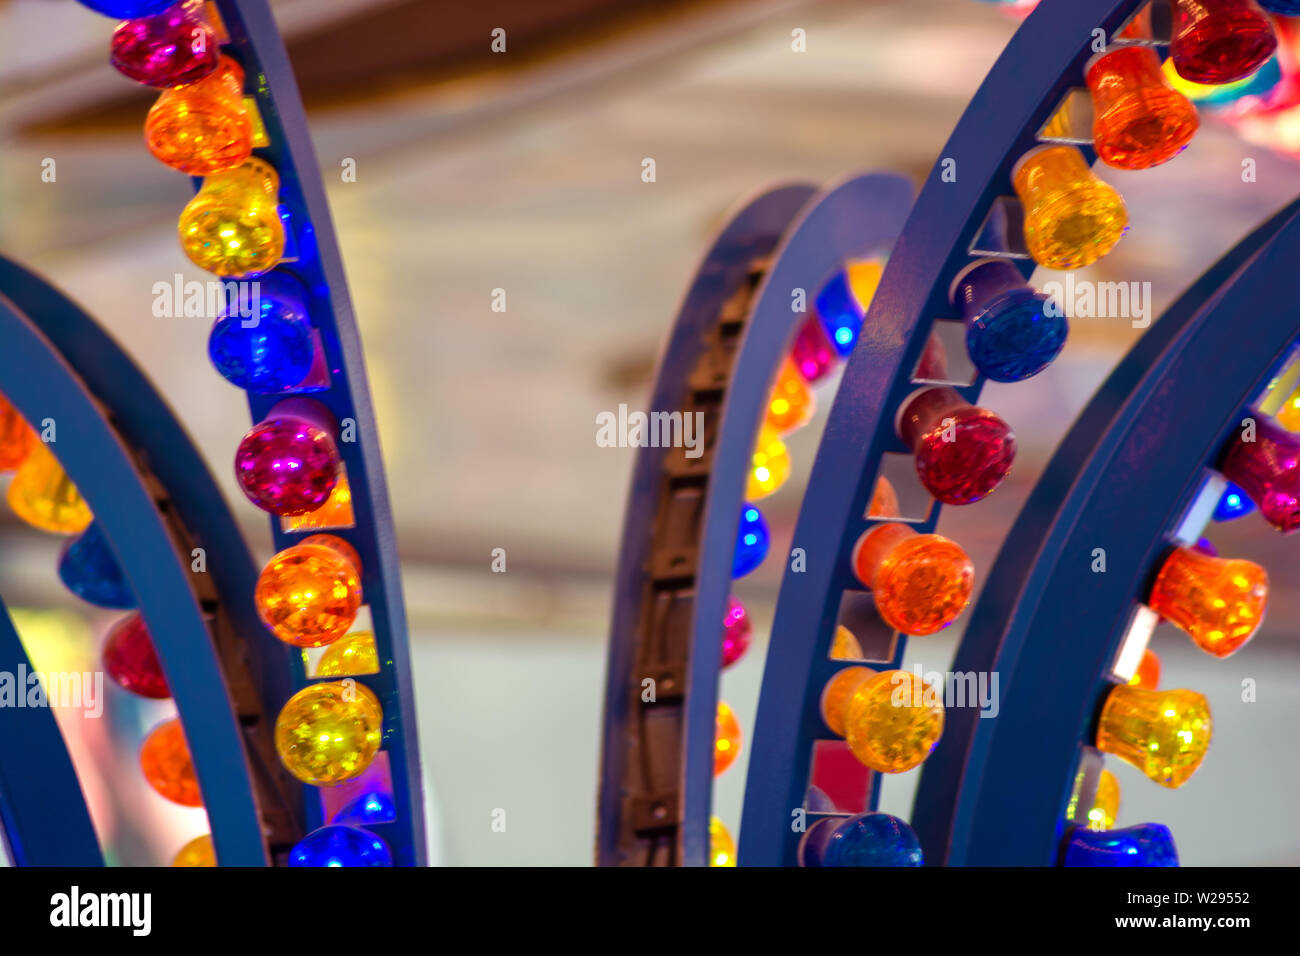 Concept funfair : Lights - Stock Image